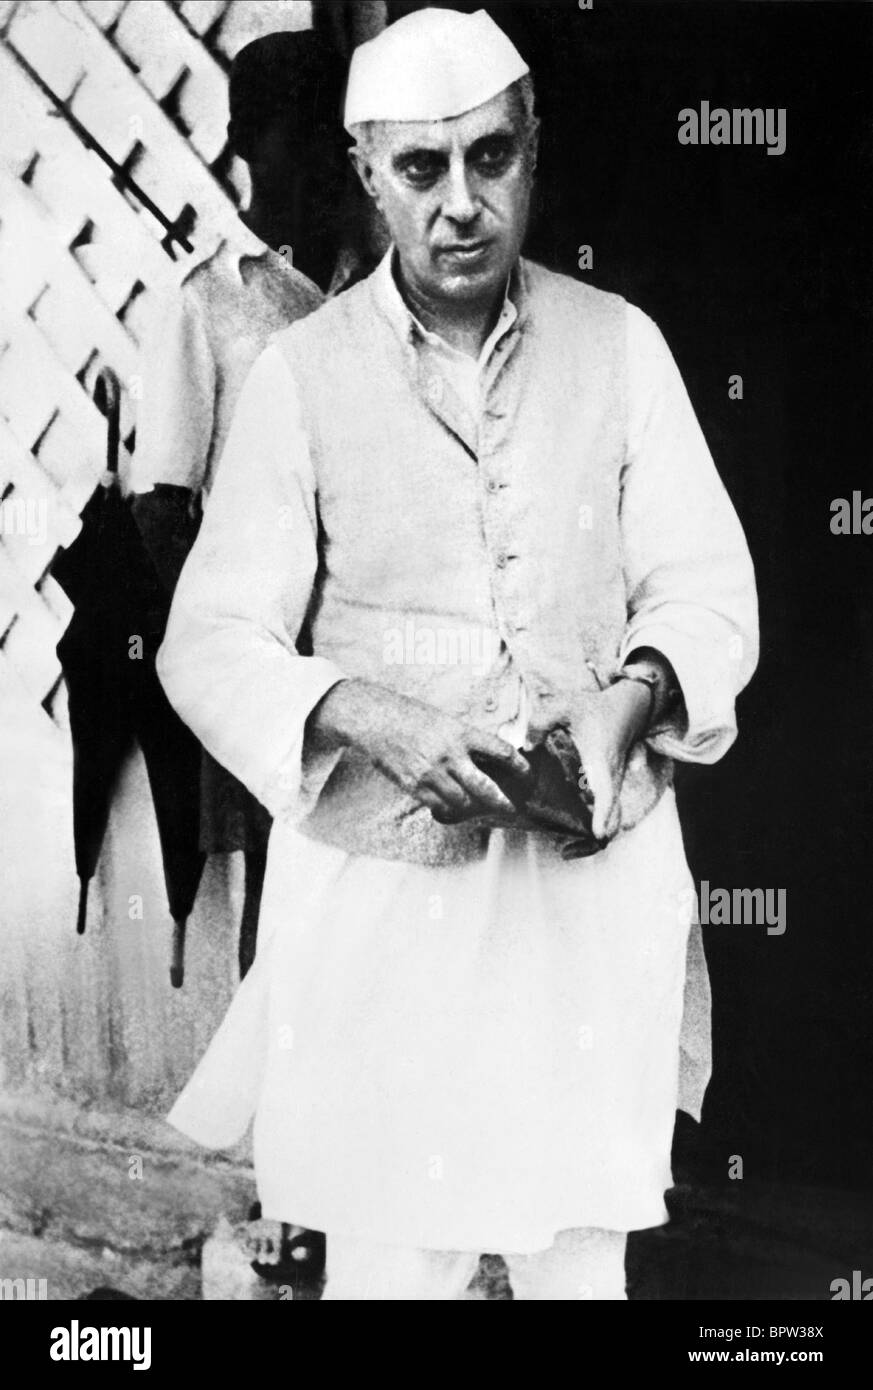 JAWAHARLAL NEHRU FIRST PRIME MINISTER OF INDIA 01 June 1946 - Stock Image